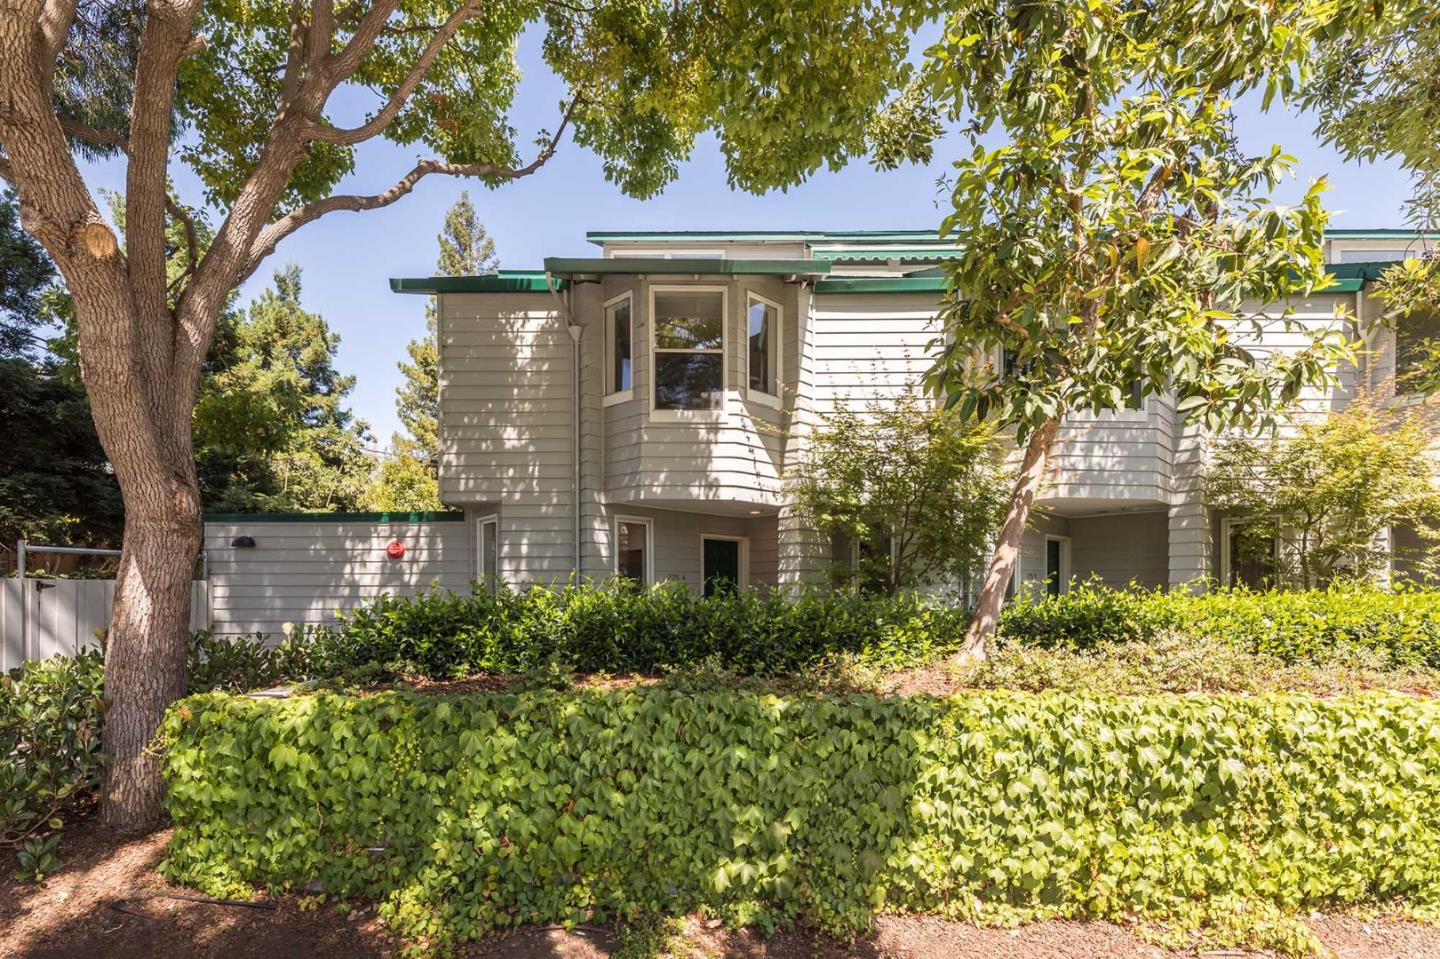 Additional photo for property listing at 725 Loma Verde Avenue  Palo Alto, California 94303 United States